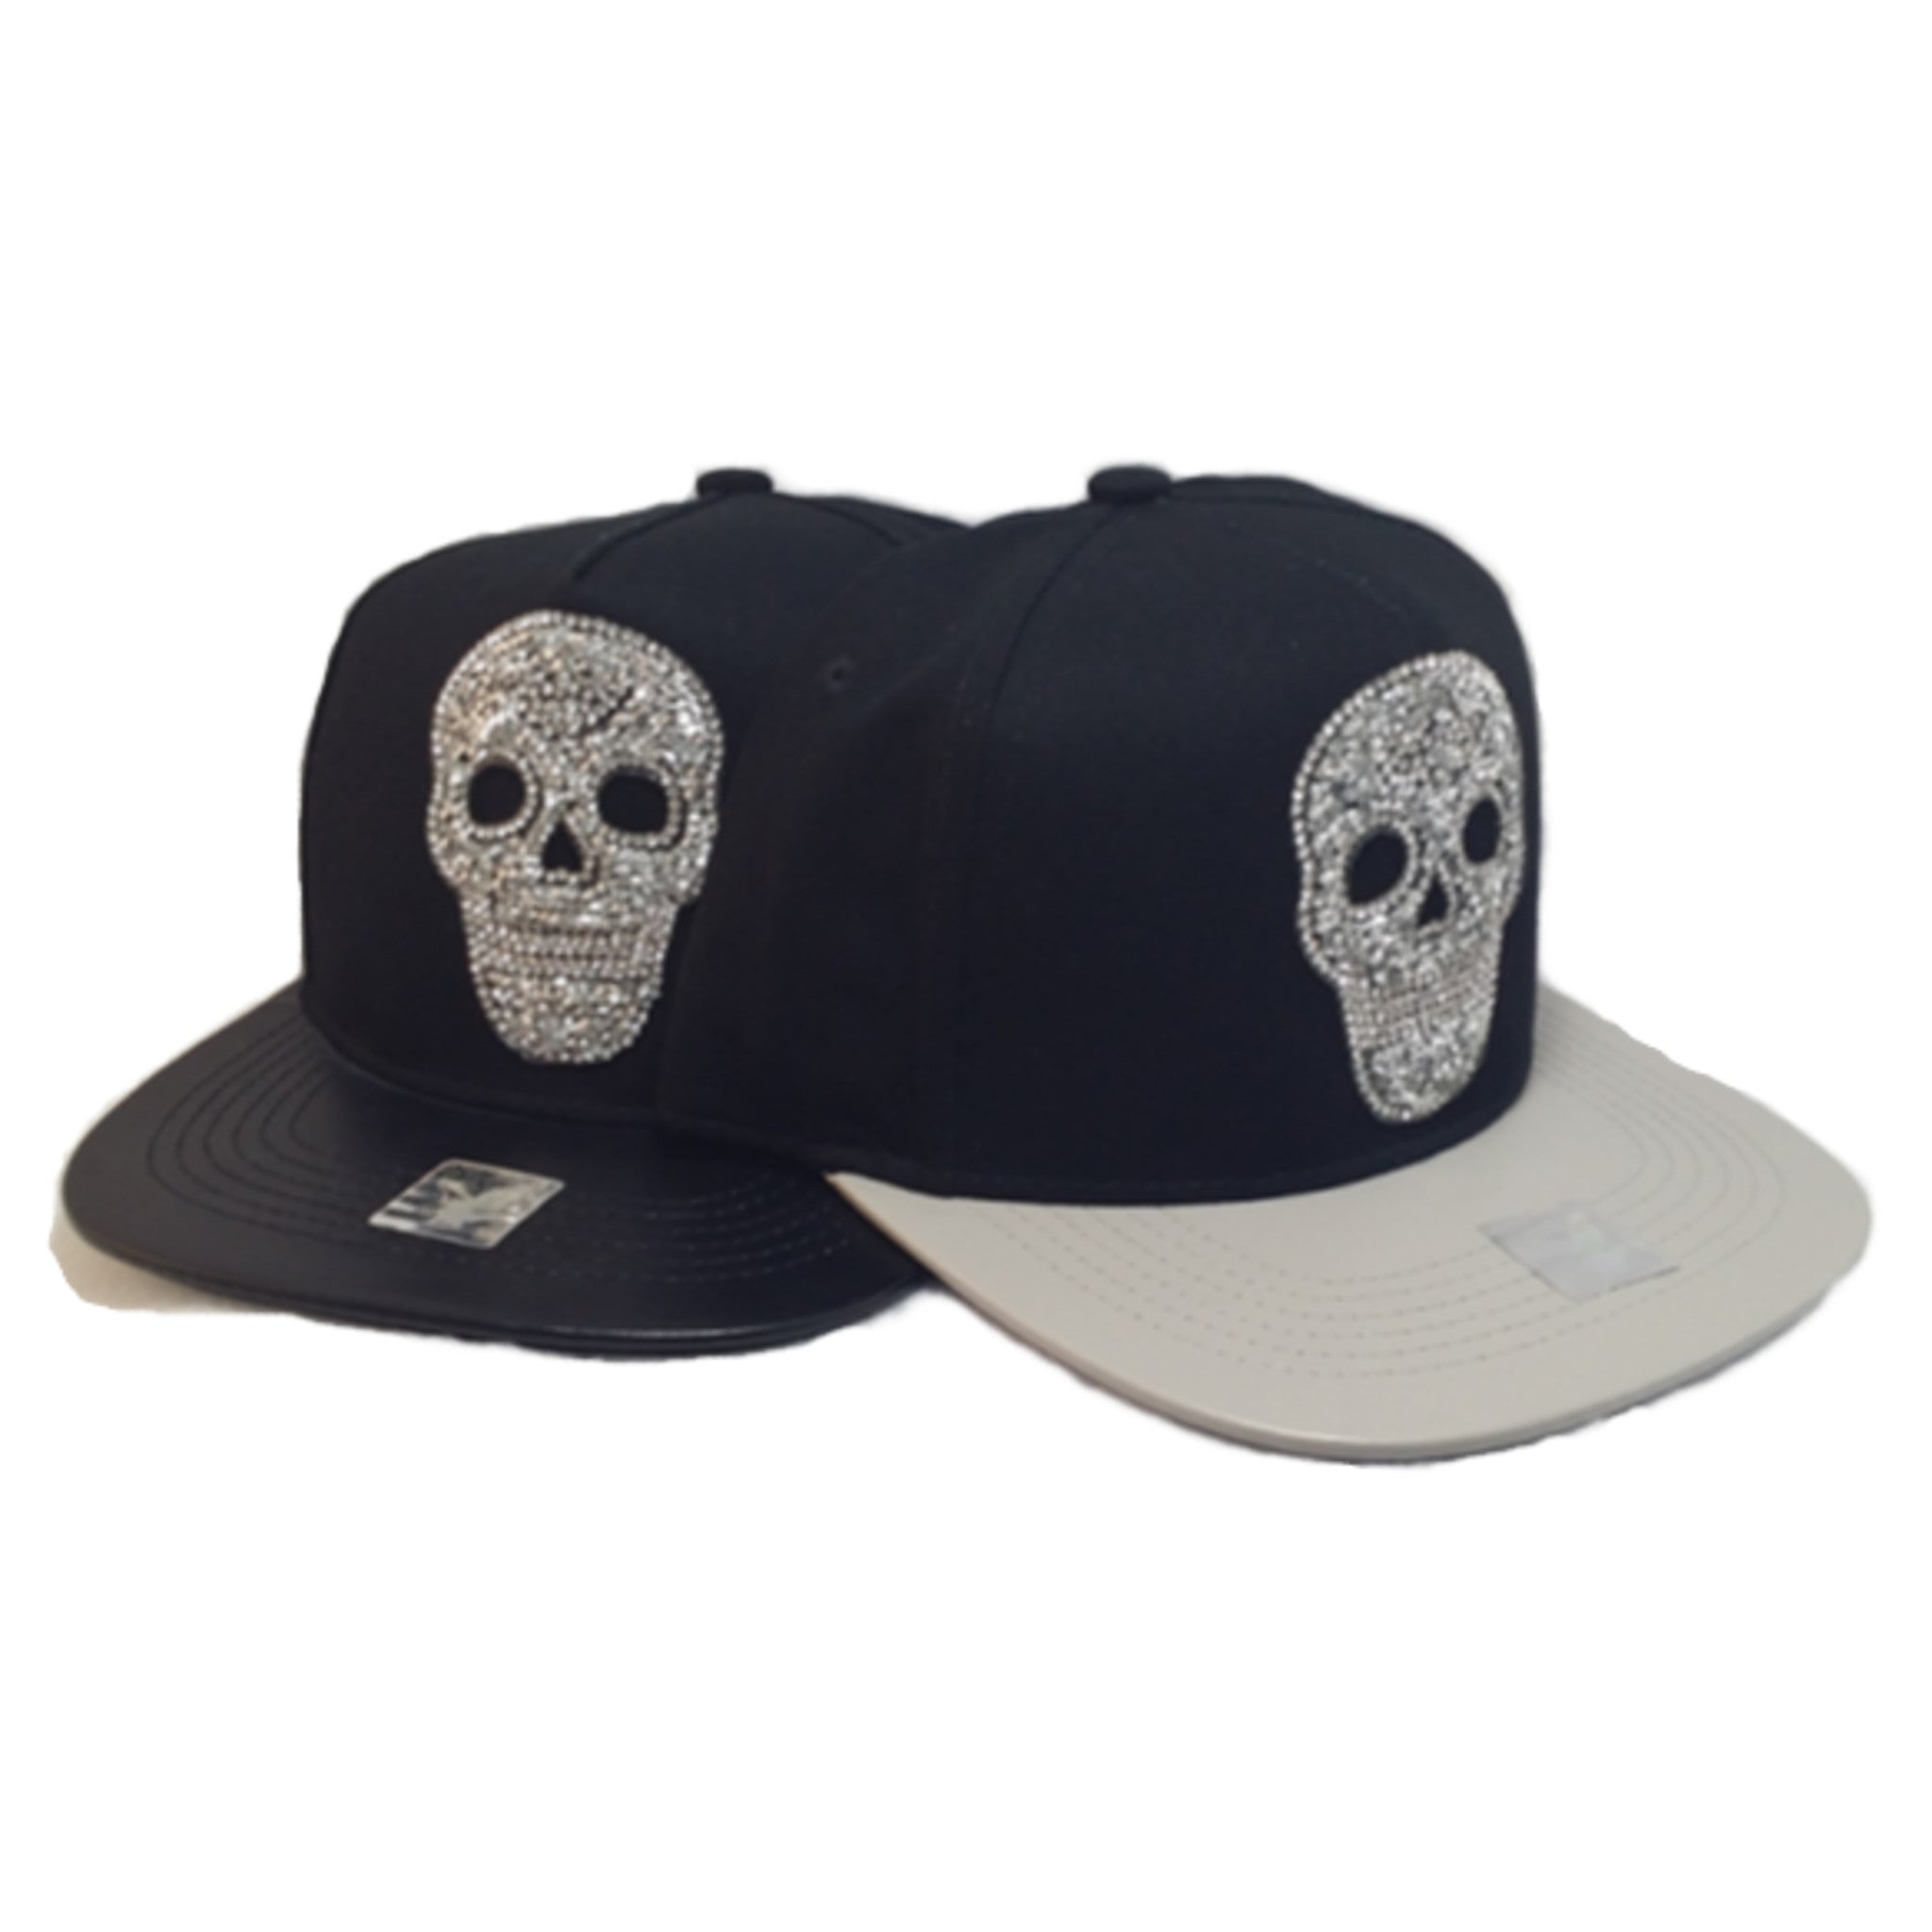 Rhinestone Skull Hat With Faux Leather Brim - Metalhead Art & Design, LLC